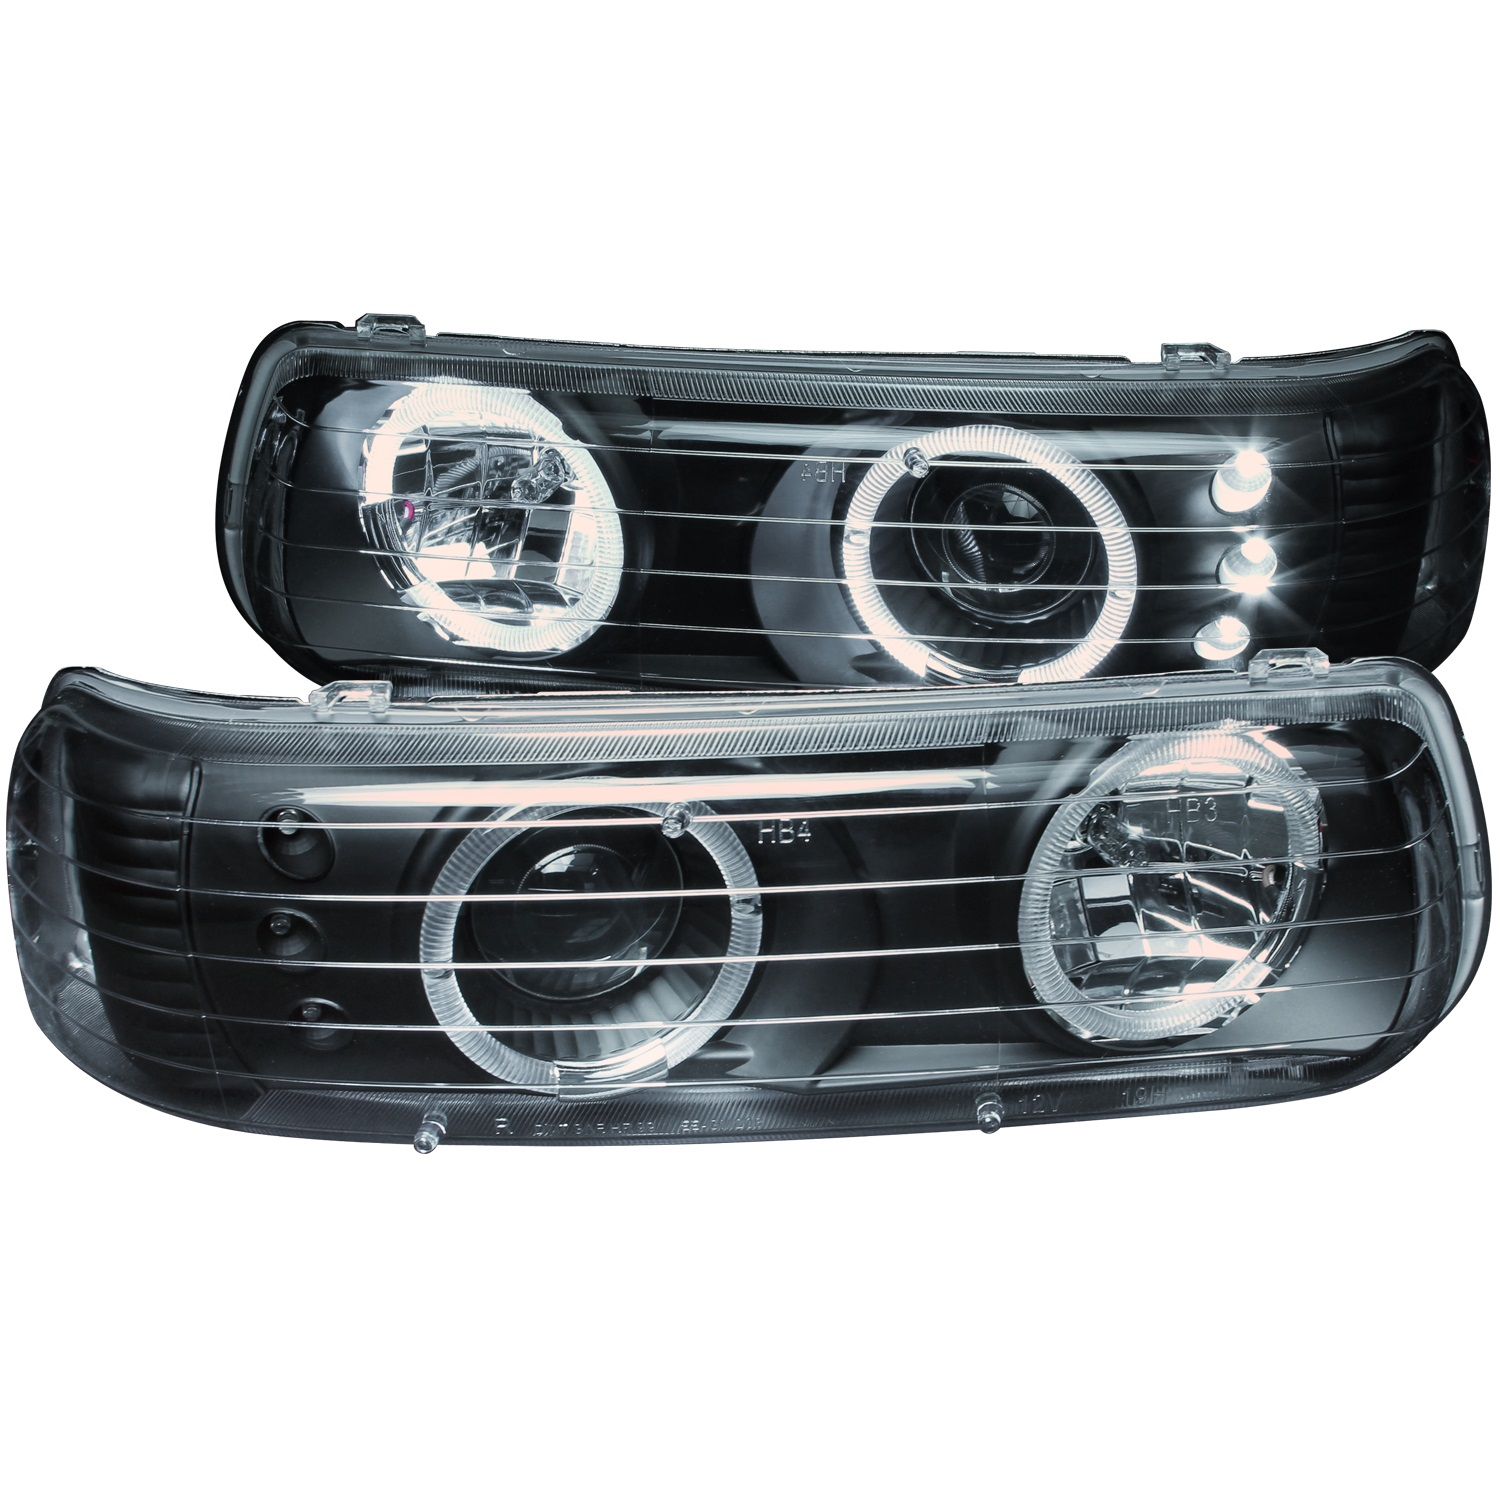 Anzo USA 111189 Projector Headlight Set w/Halo